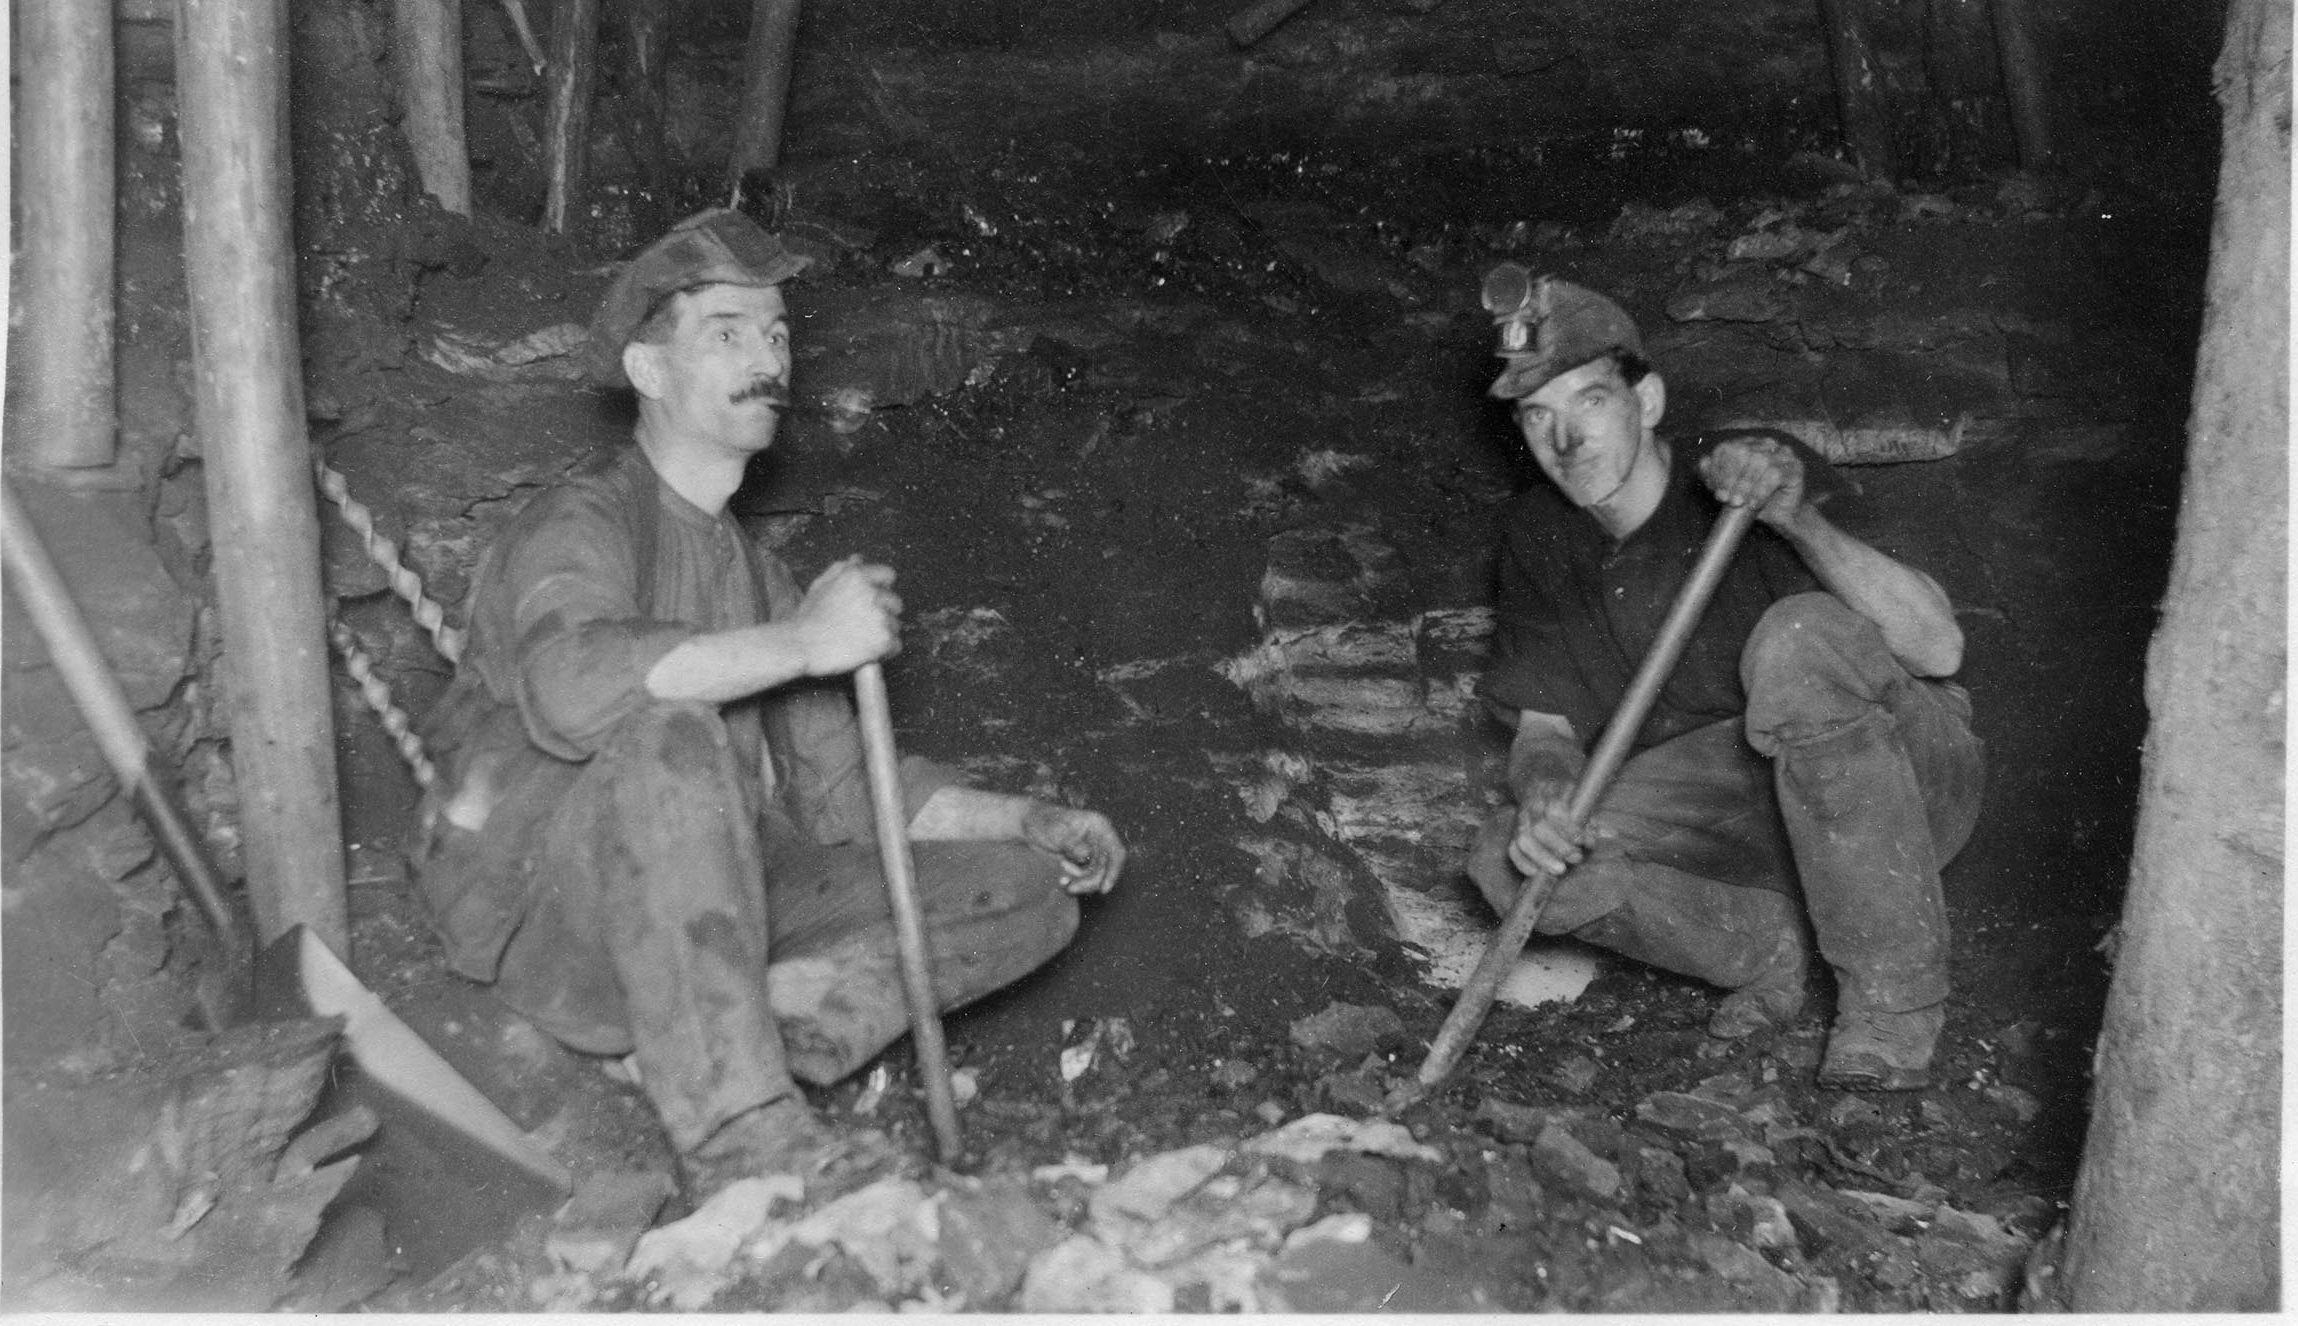 Miners in the Wellesley pit in 1926